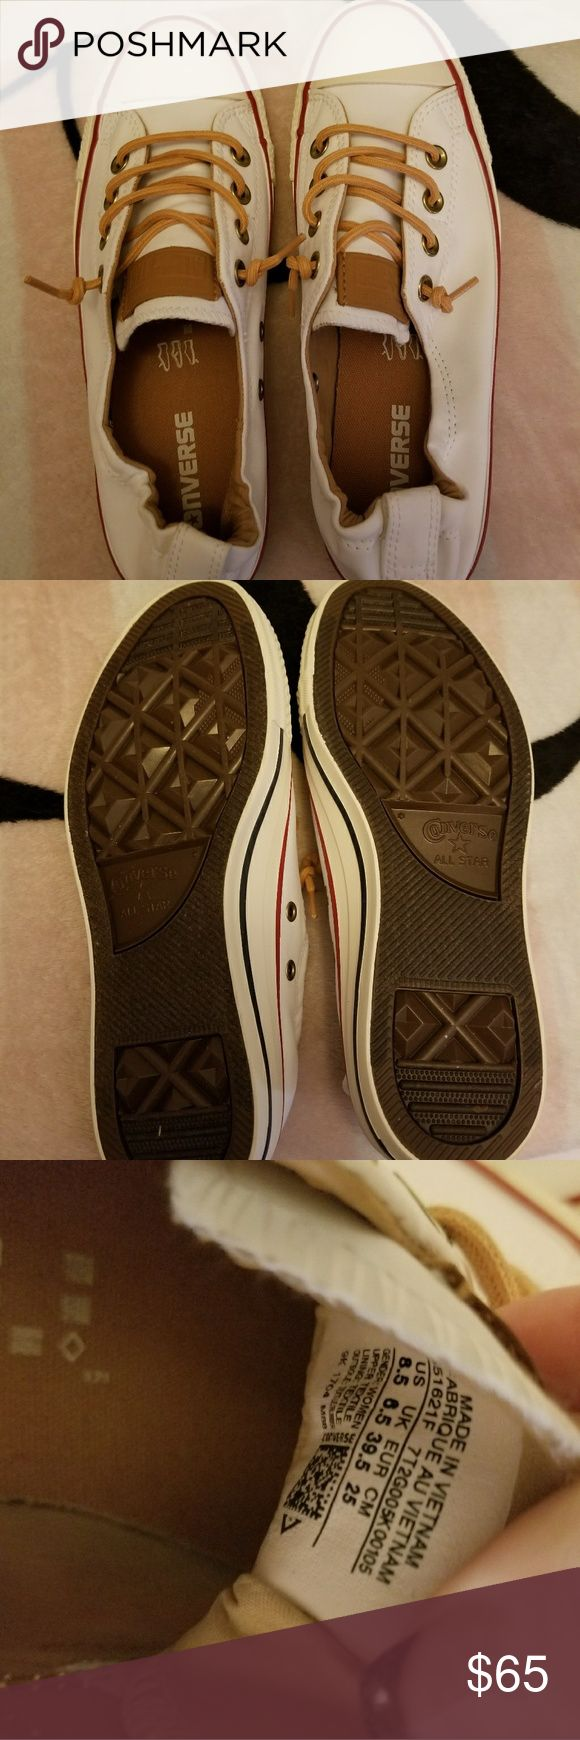 BRAND NEW Converse Slip-On Shoes BRAND NEW, NEVER WORN Converse Slip-On Shoes in absolute perfect, MINT condition!! They are size 8.5, and they are way too big on me!! I want to make AT LEAST close to what I paid for them, so NO LOW BALLING please!!!!!! Converse Shoes Sneakers